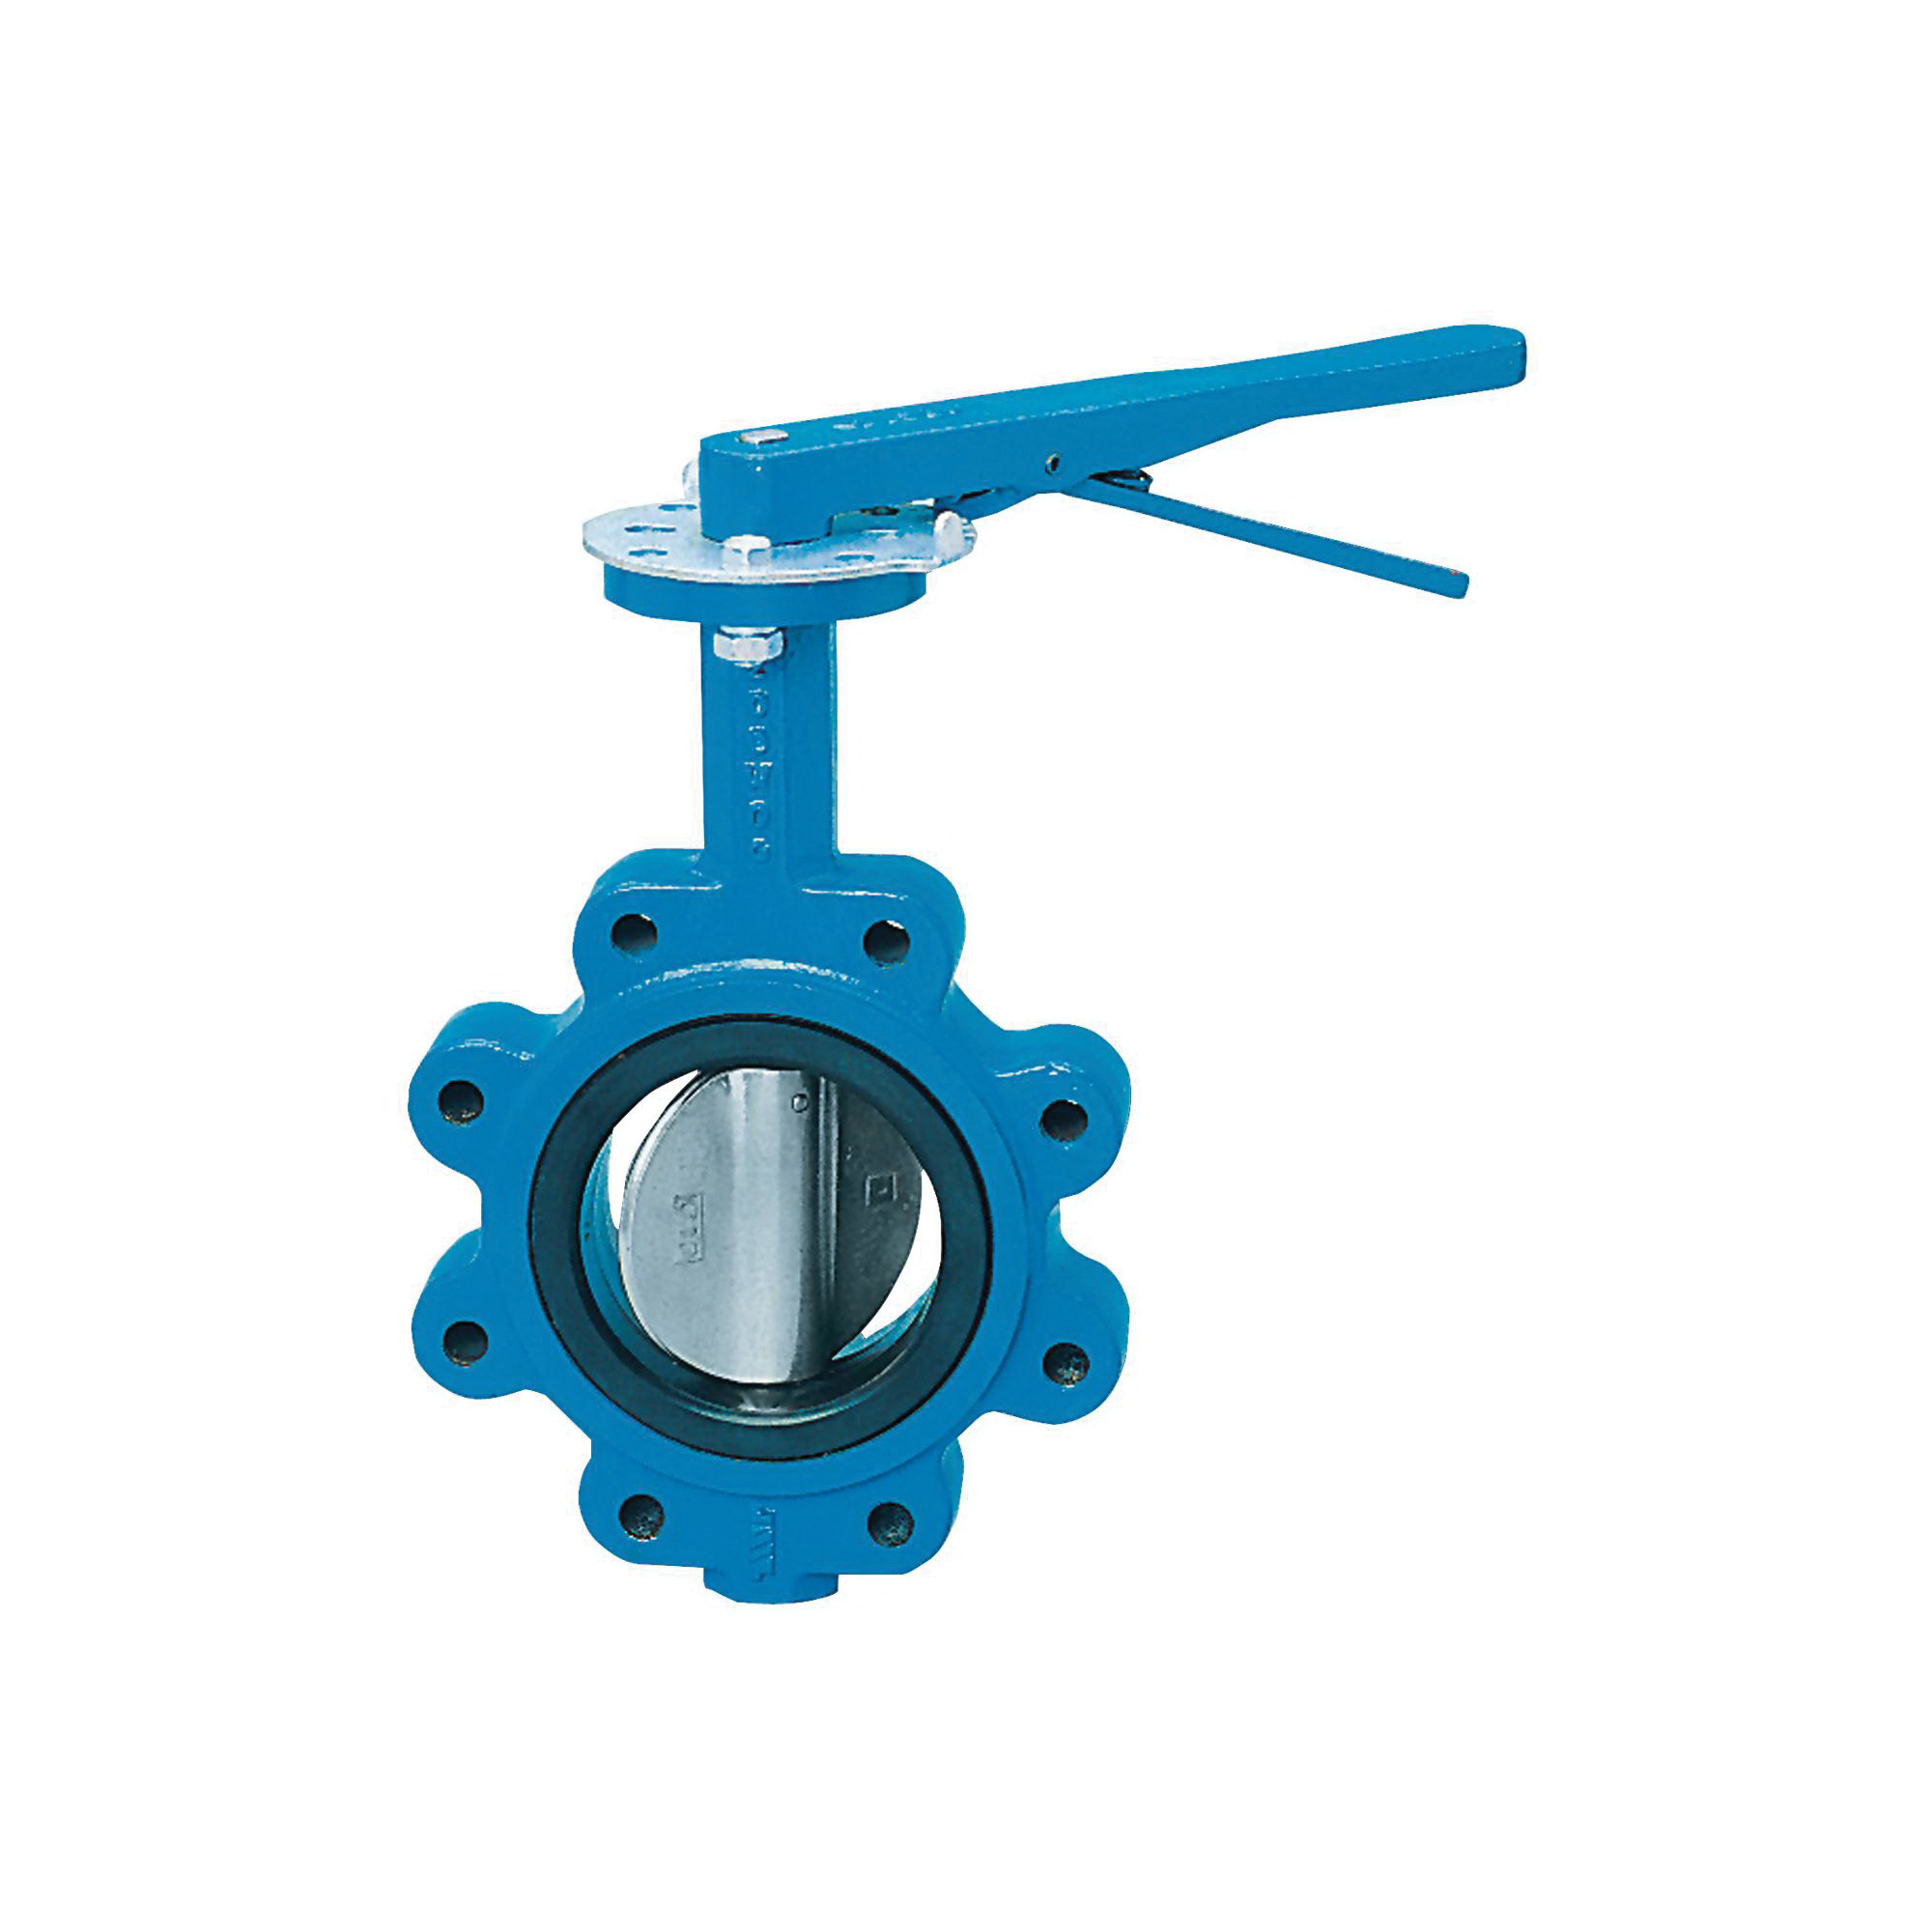 WATTS® 0525585 BF-03-M2 Full Lug Butterfly Valve, 3 in, Flange, 125/150 lb, Ductile Iron Body, Import